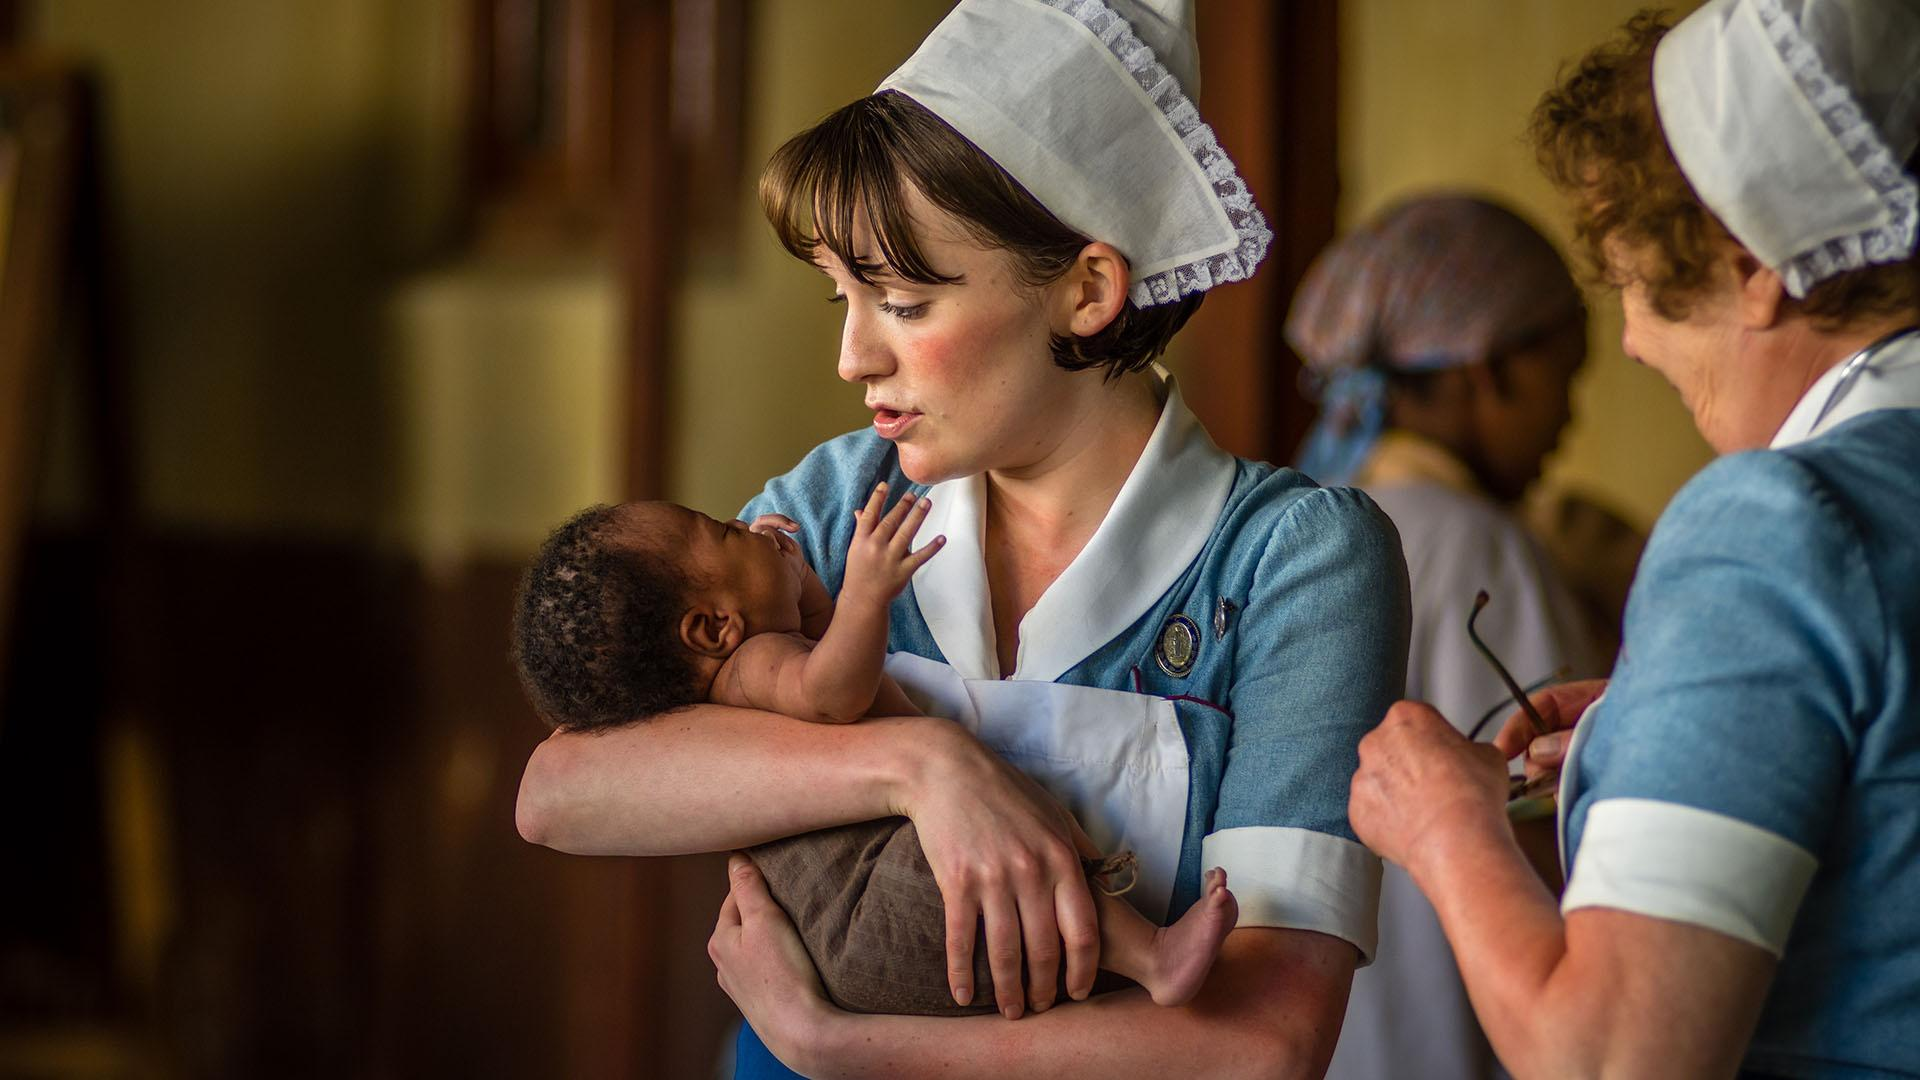 the lives of midwives in poor east side of london in call the midwife a medical drama series